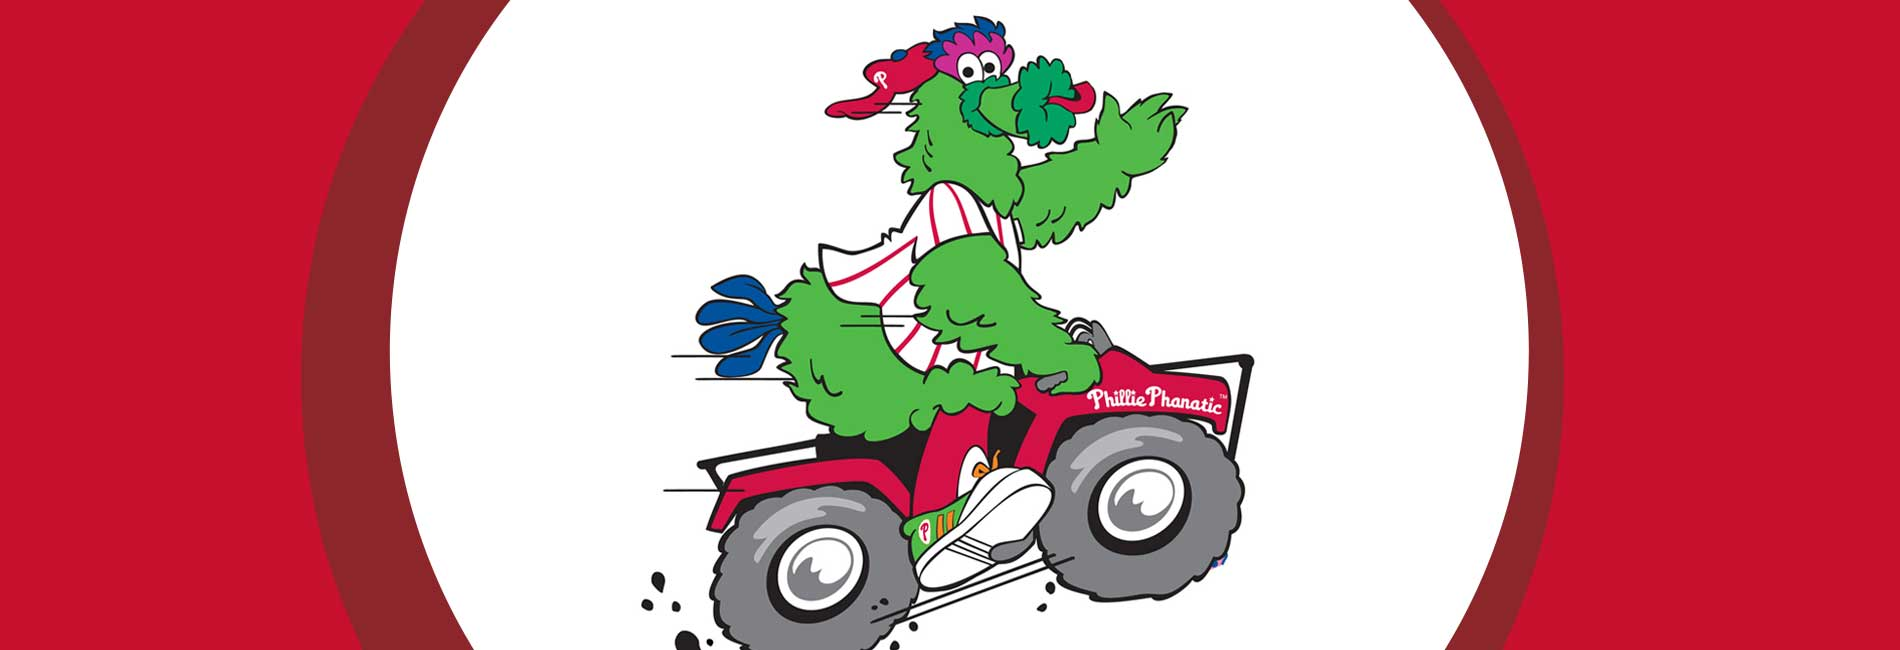 Phanatic Dine